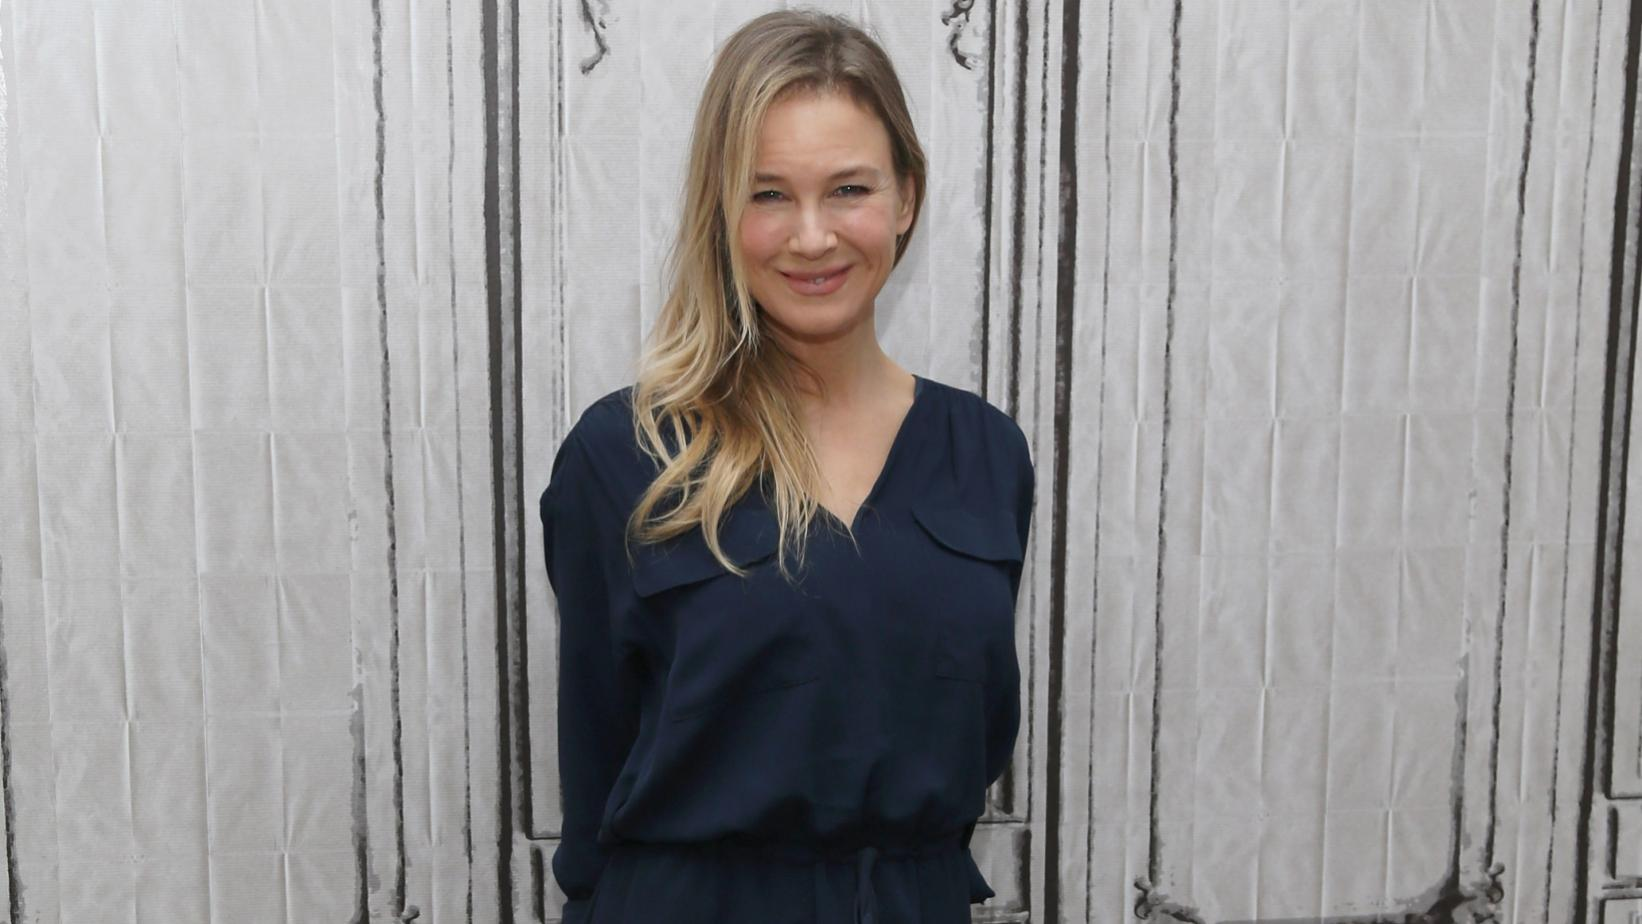 Renée Zellweger photographed in 2016